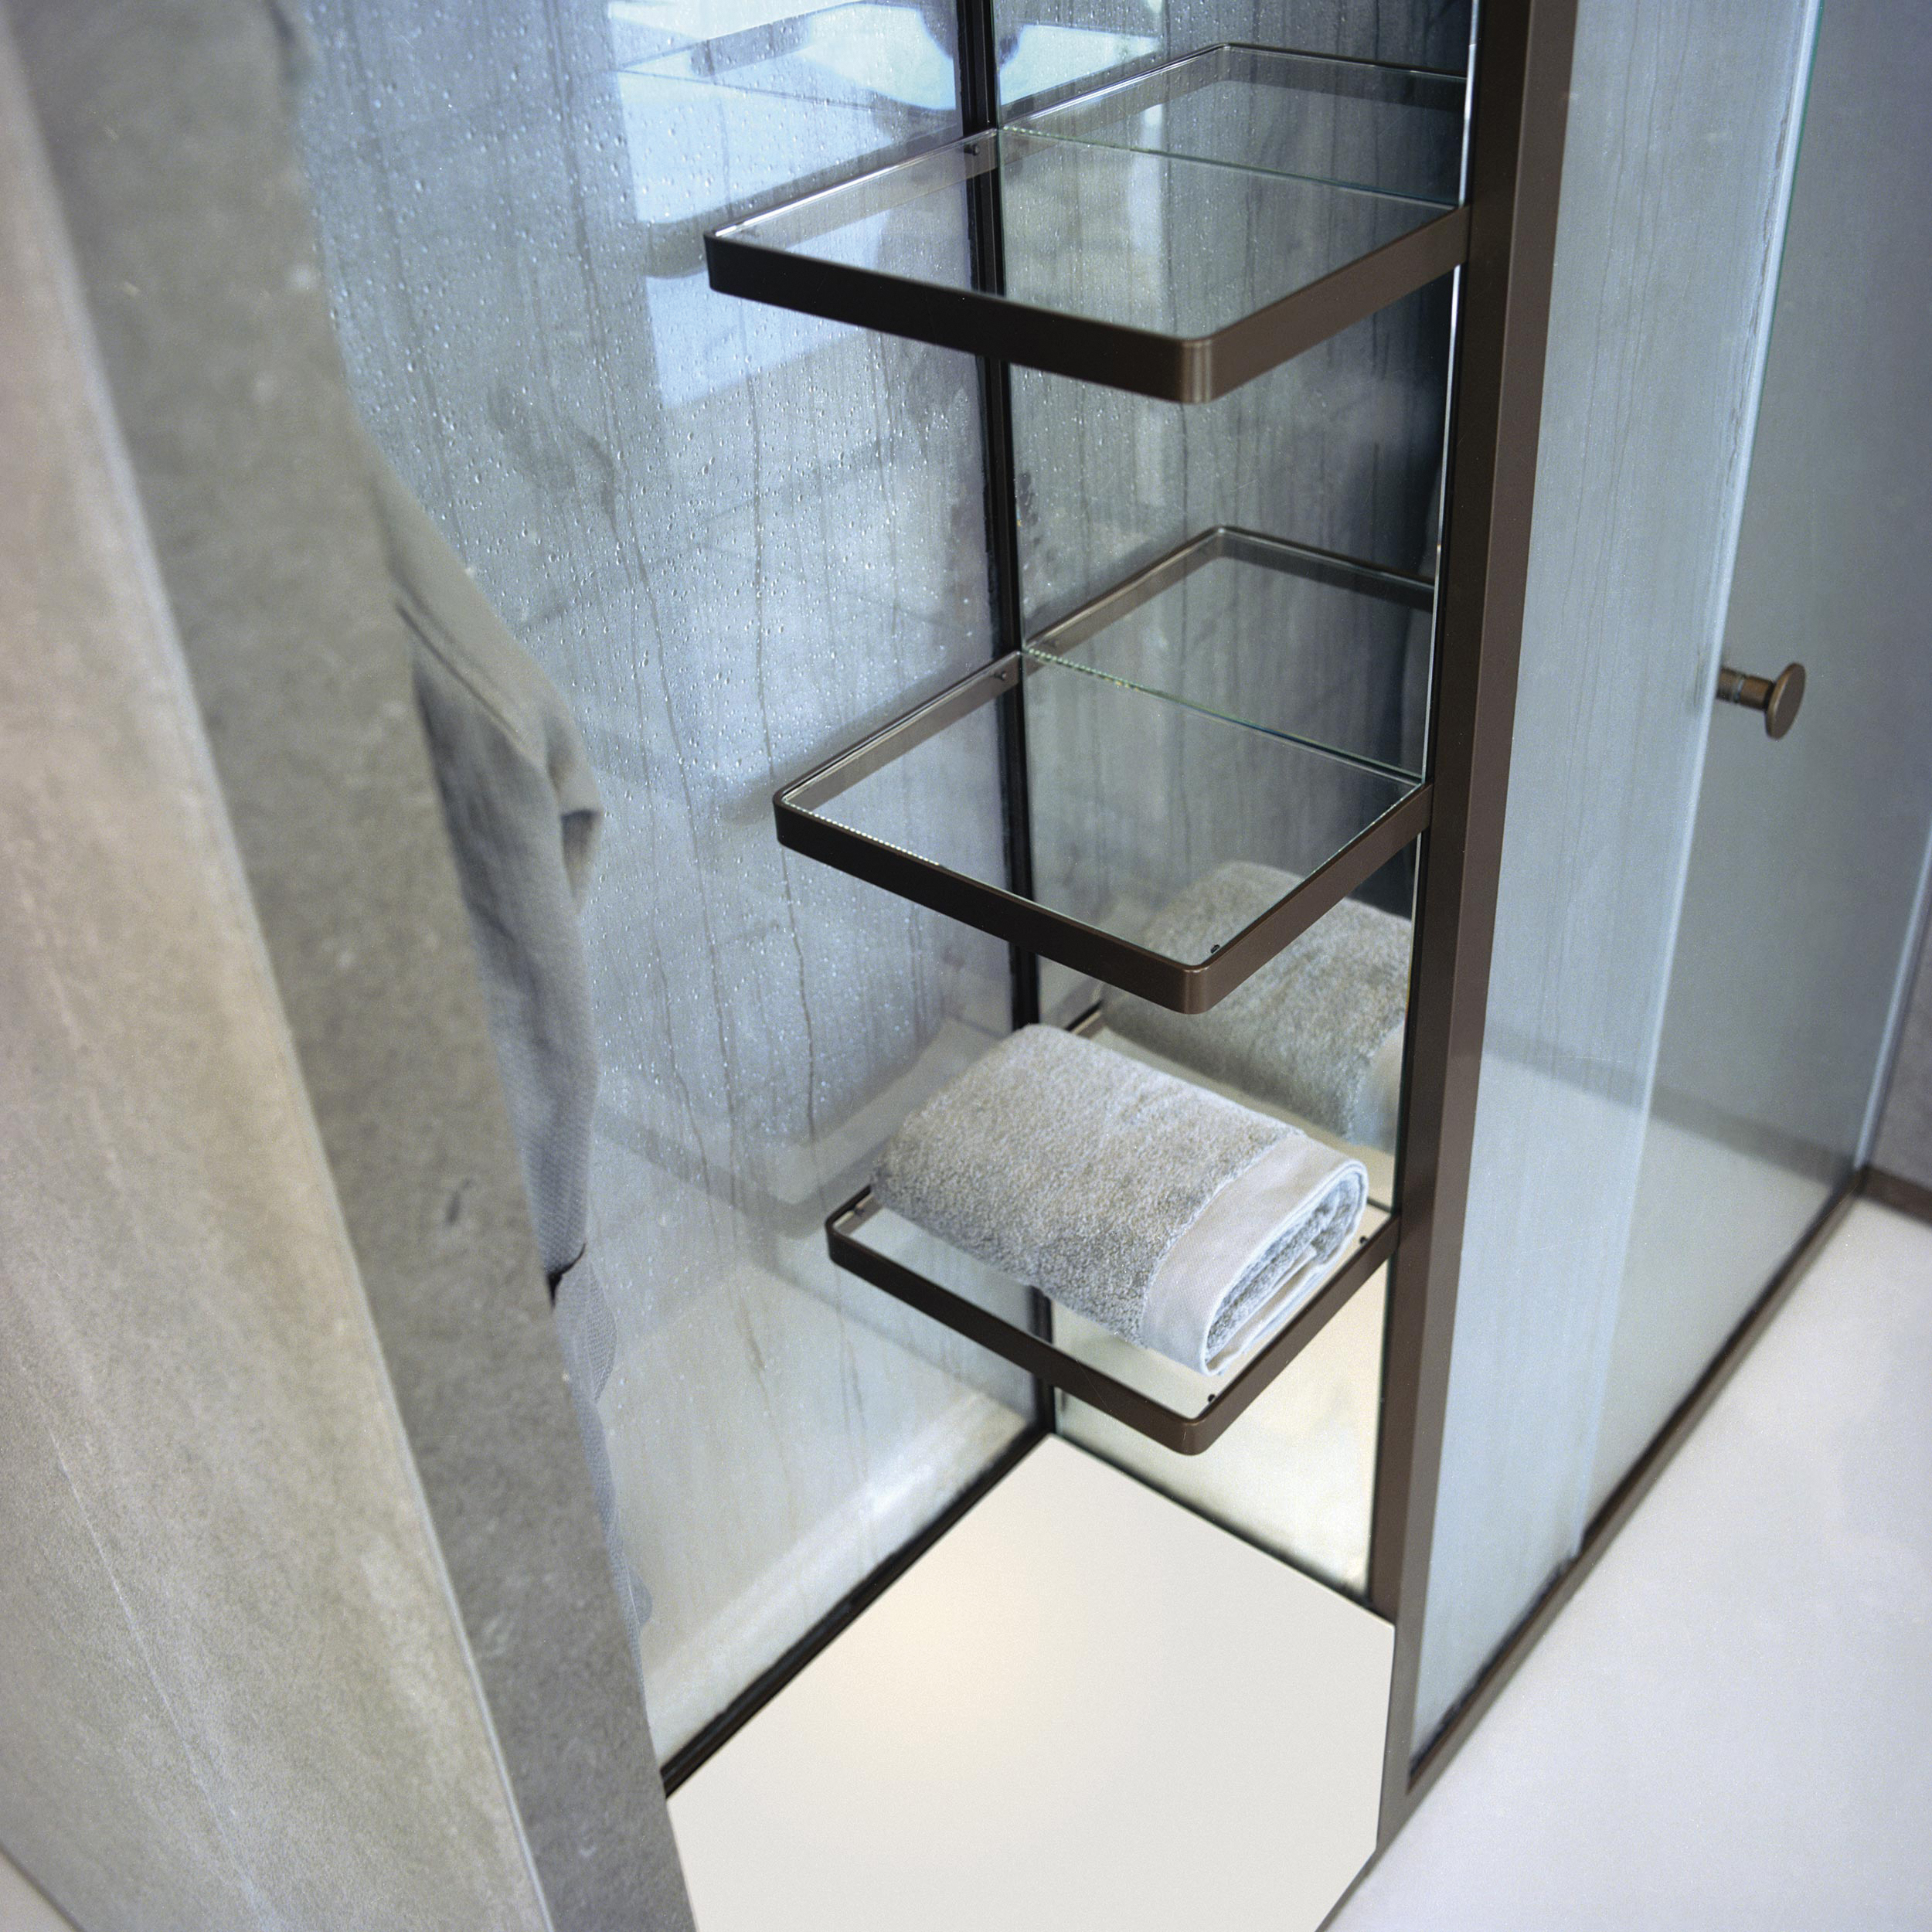 5 - External Storage Shelves With Glass Shelves And Mirrored Wall